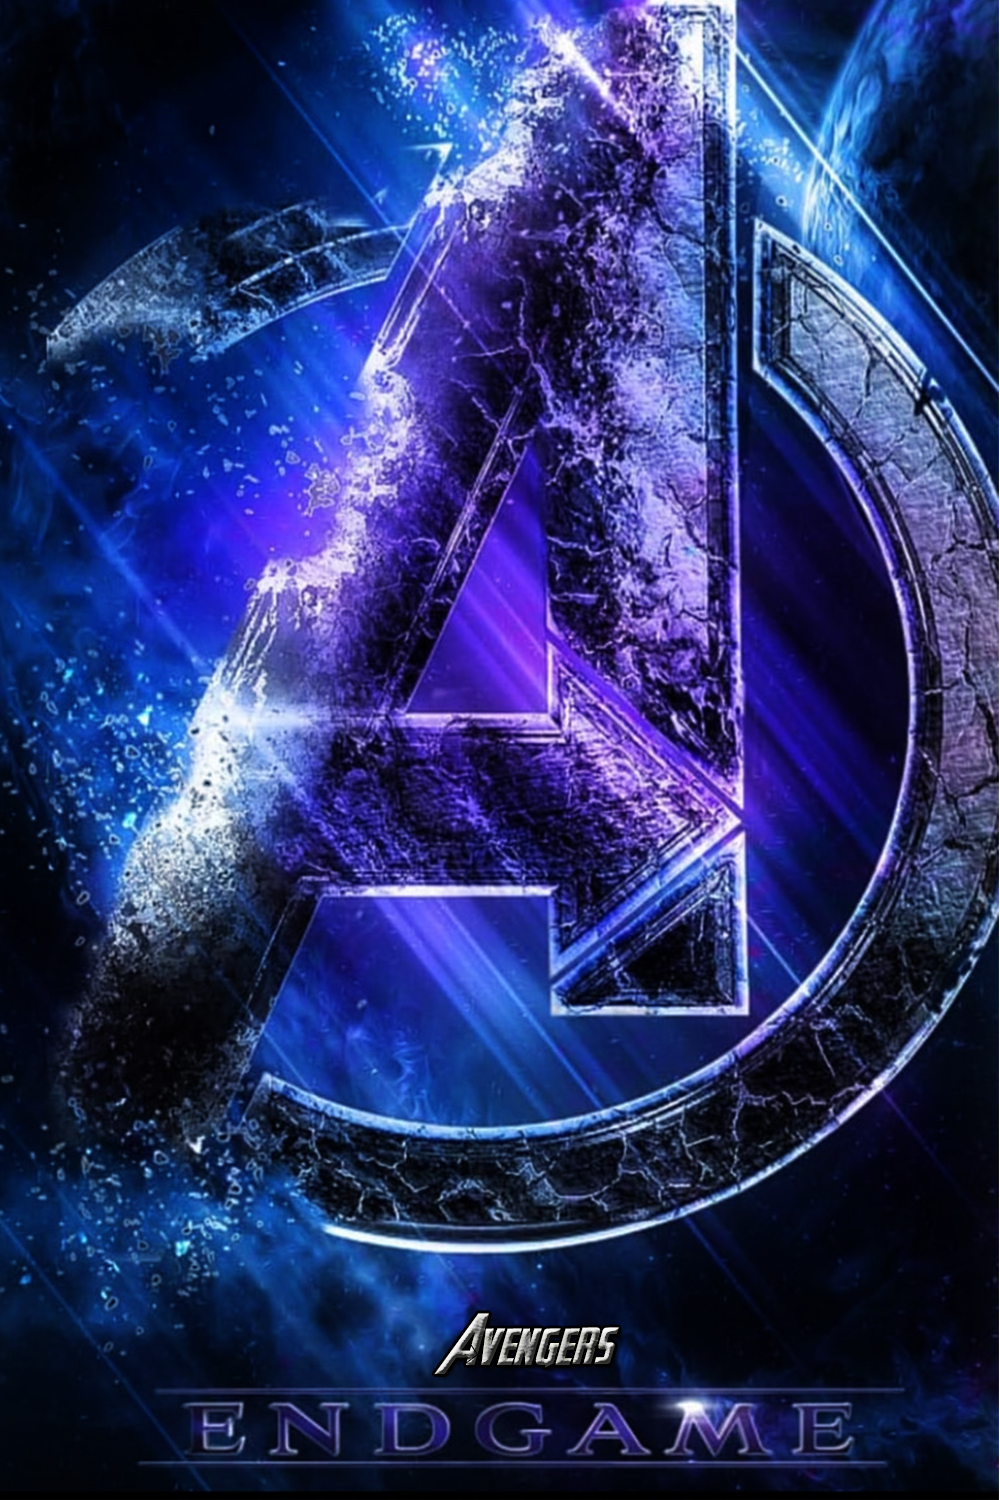 Avengers Wallpaper Iphone 11 Hd Free Download In 2020 Avengers Wallpaper 3d Wallpaper Avengers Marvel Wallpaper